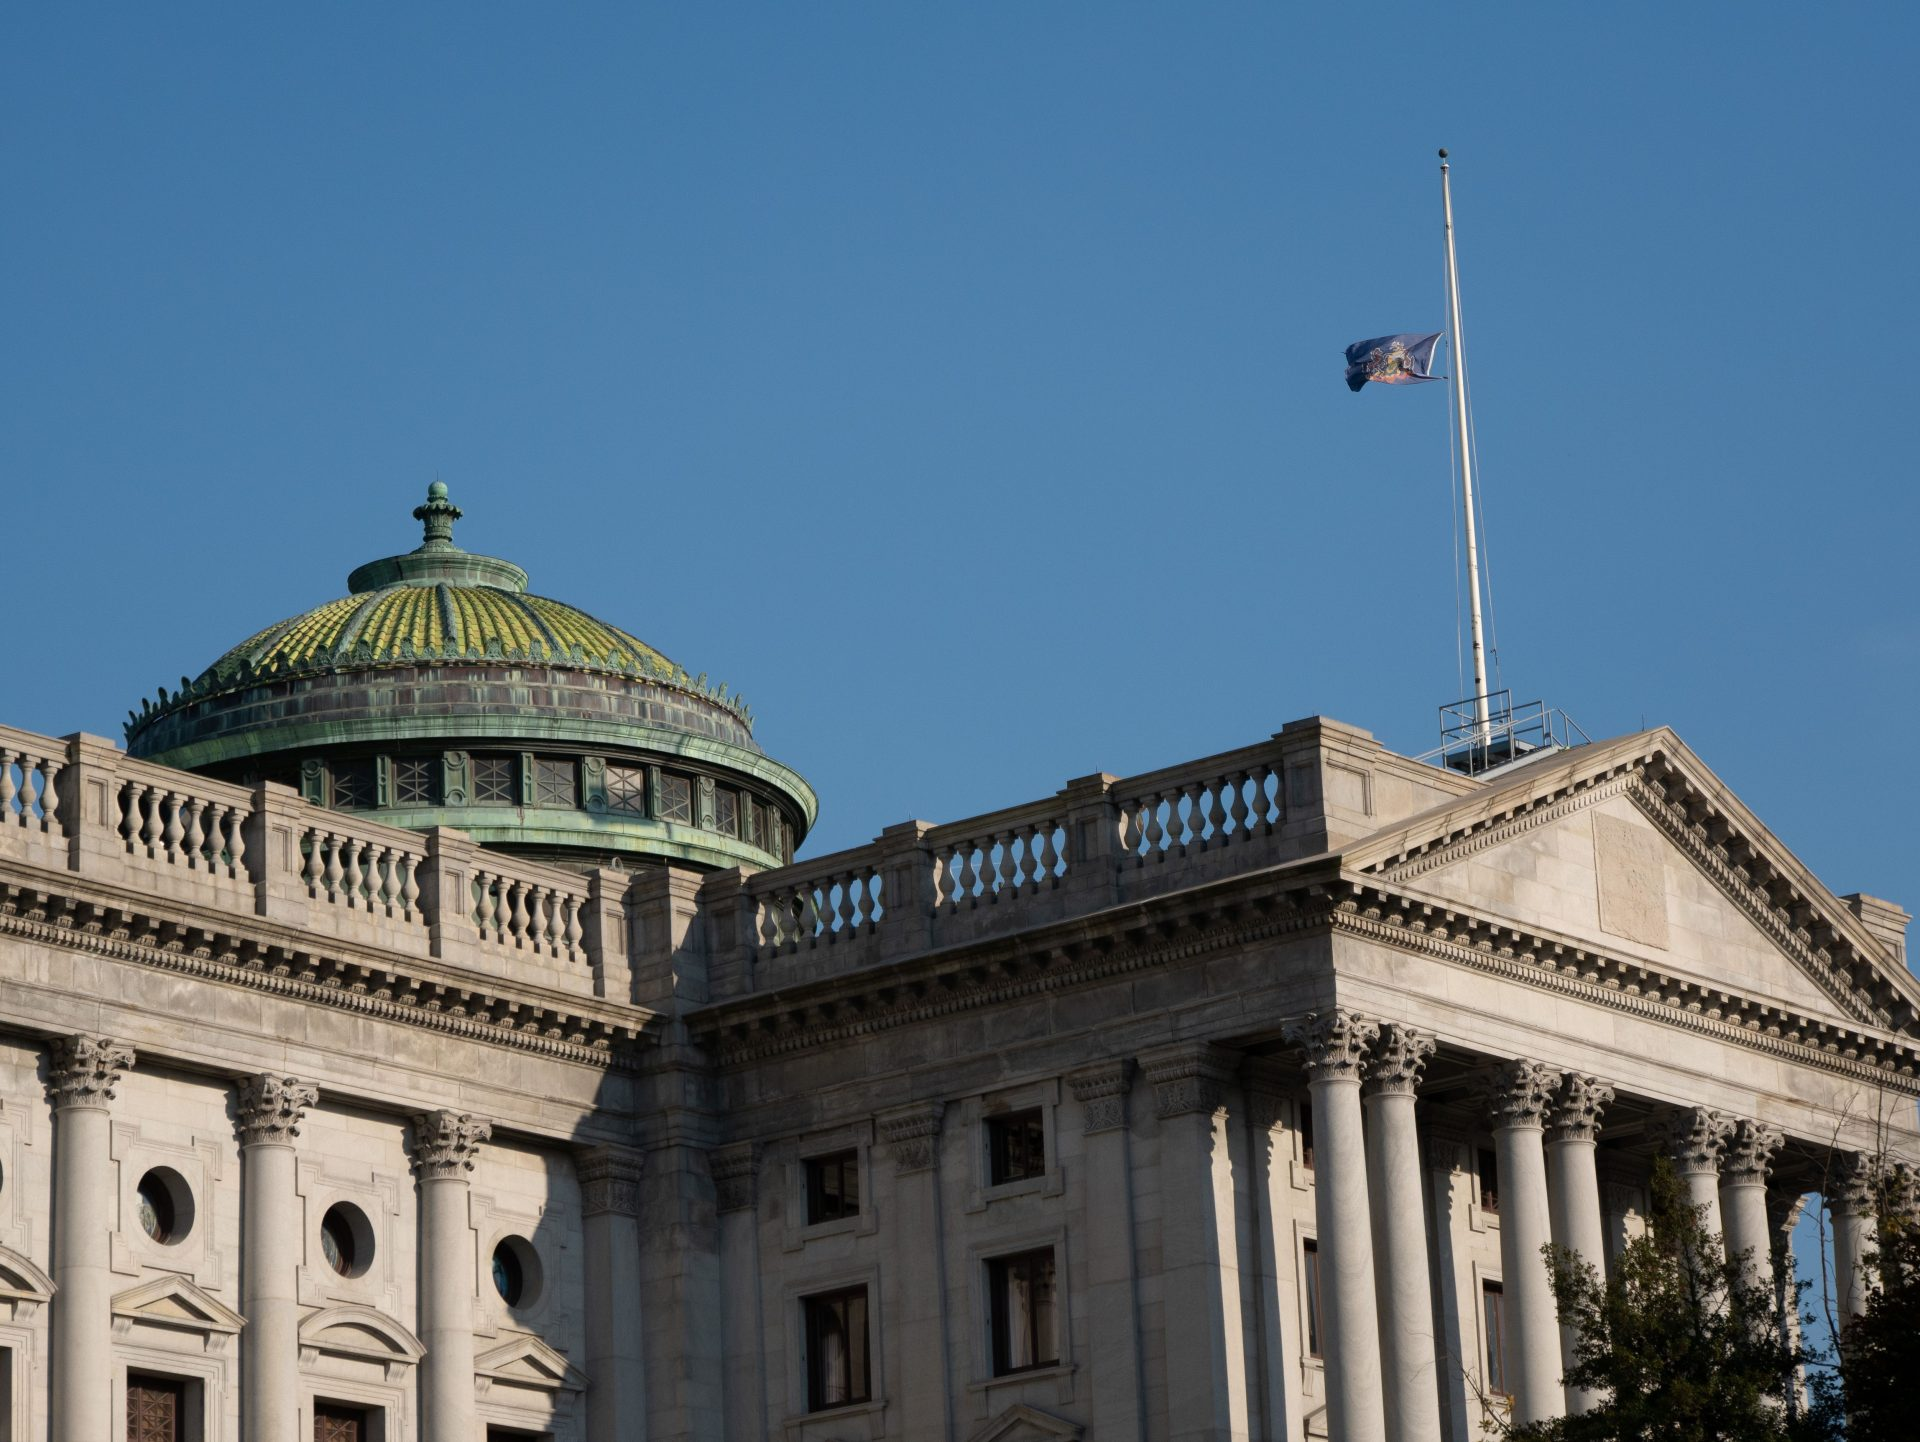 The Pennsylvania state flag flies at half-mast atop the capitol building on Oct. 31, 2018.